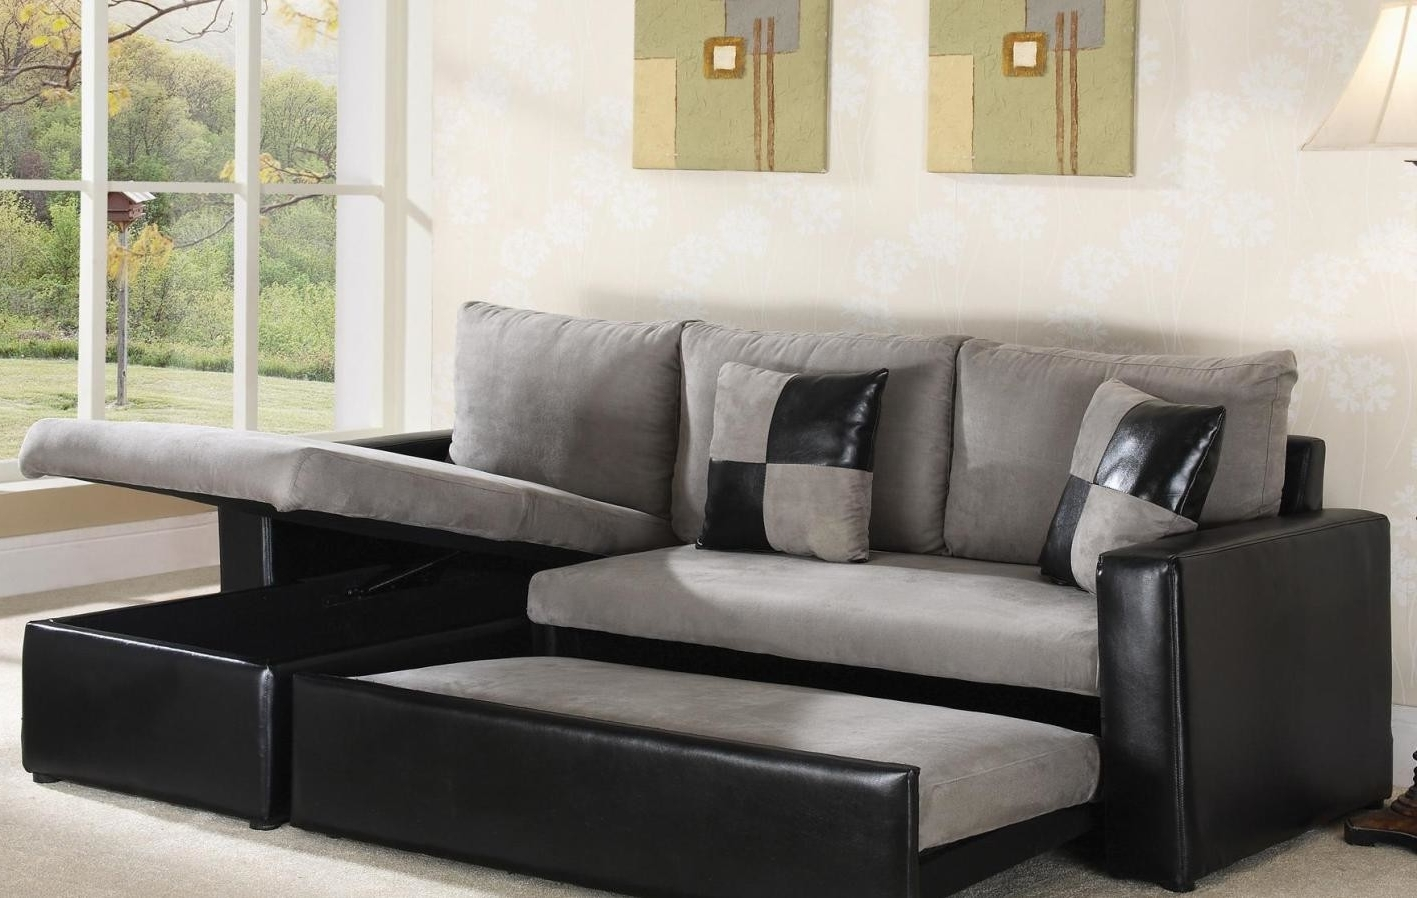 20 Best Ideas Of Gallery Furniture Sectional Sofas